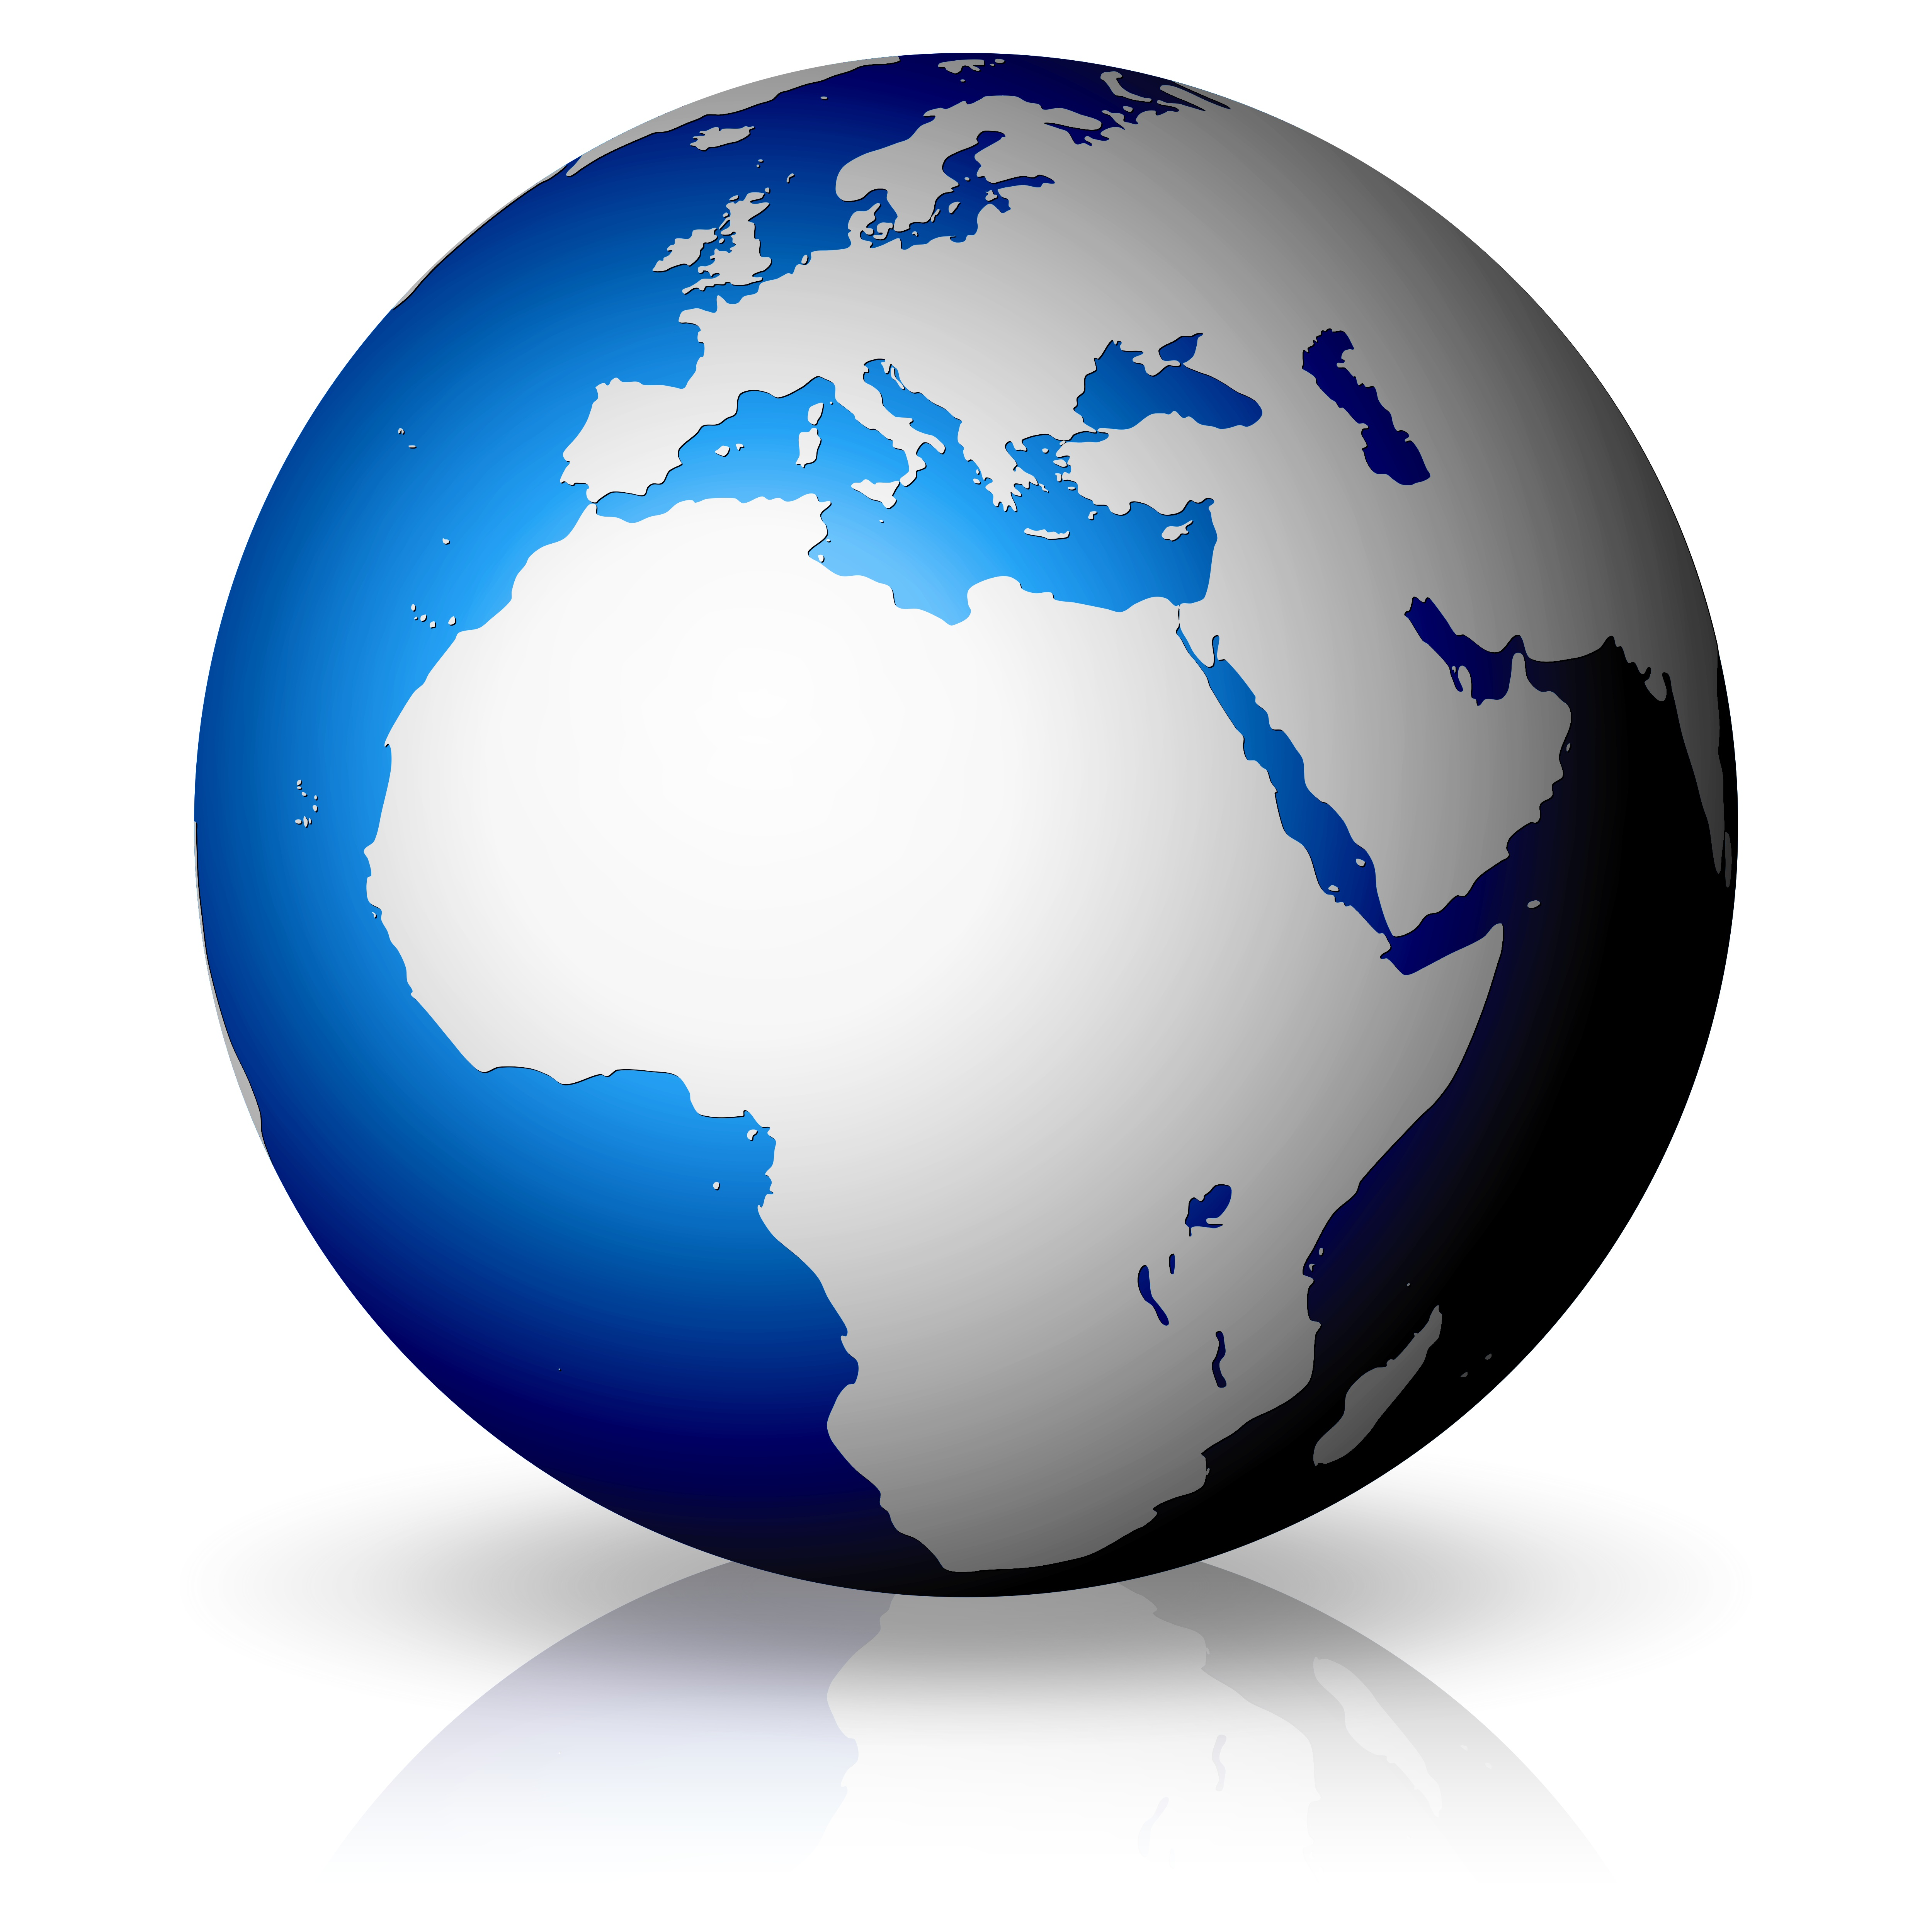 Free Global World Cliparts, Download Free Clip Art, Free Clip Art on.